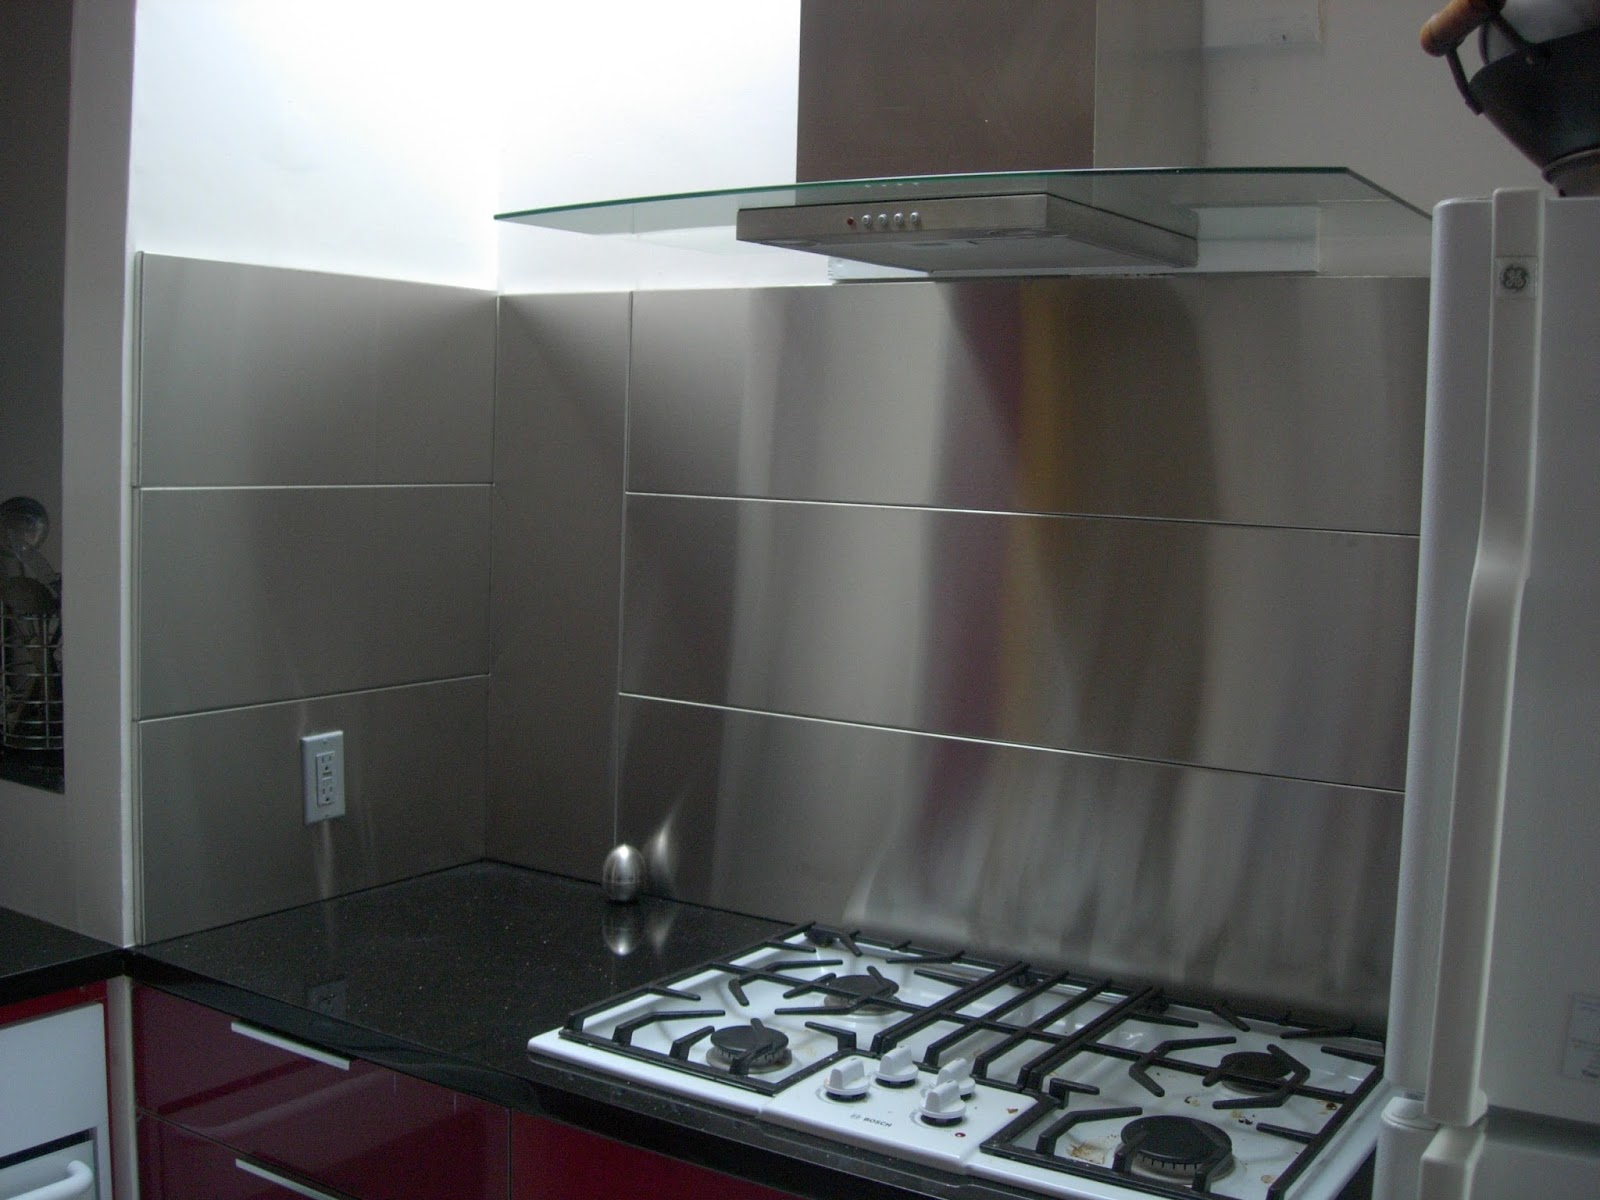 Restaurant Kitchen Stainless Wall Panels Pictures To Pin On . Design Inspirations